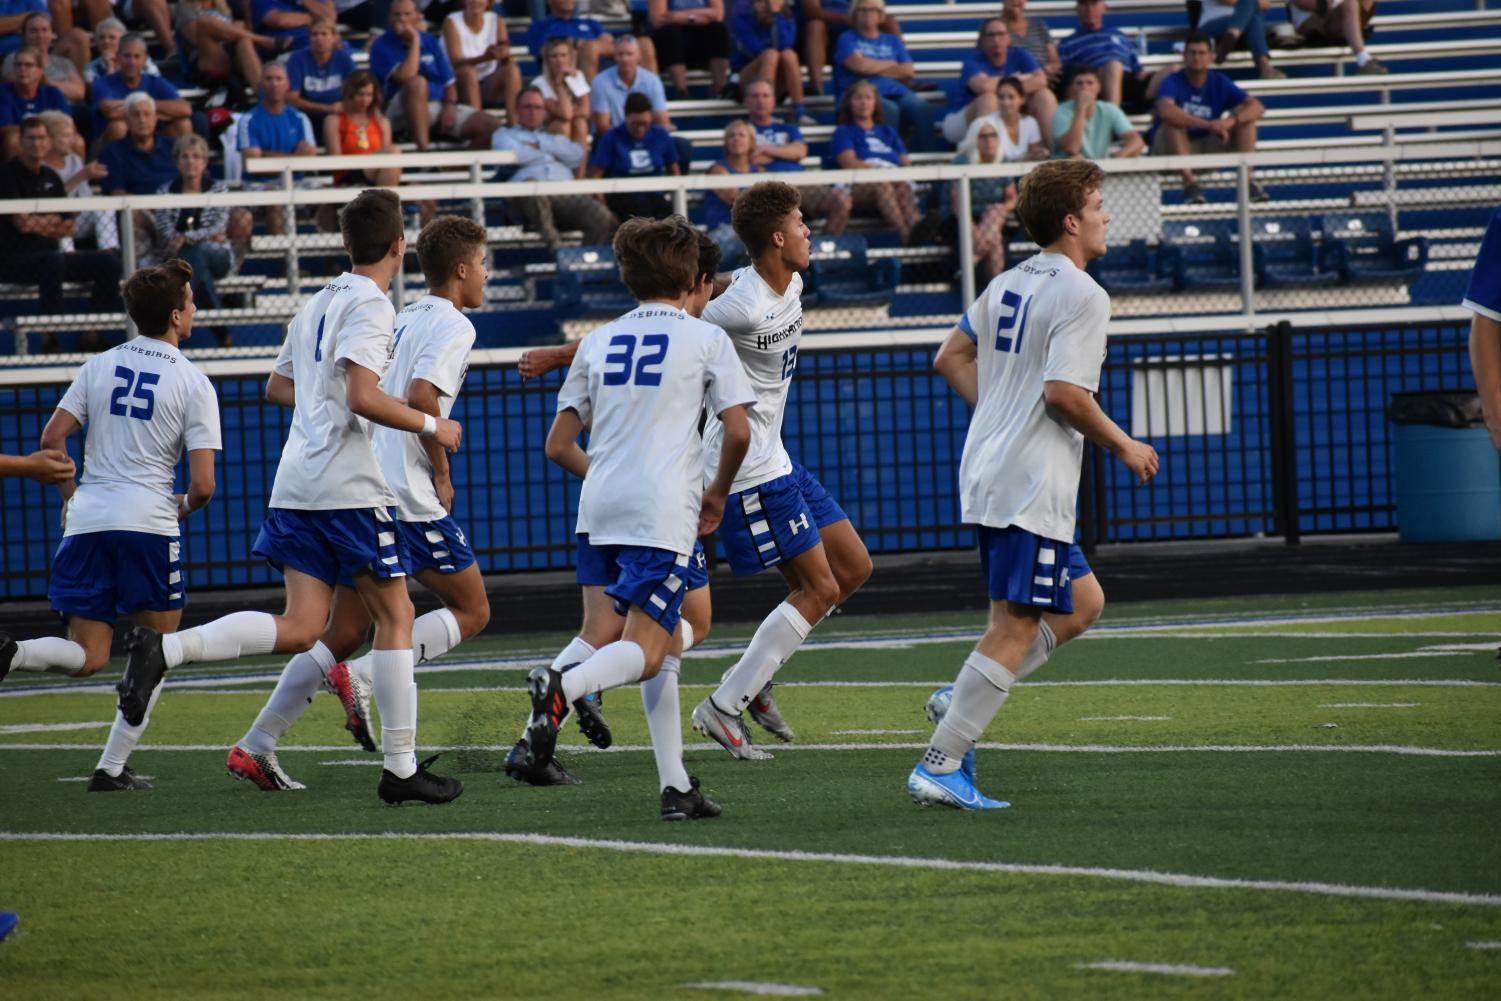 The HHS Boys Varsity soccer team rushed to get into their defensive positions.